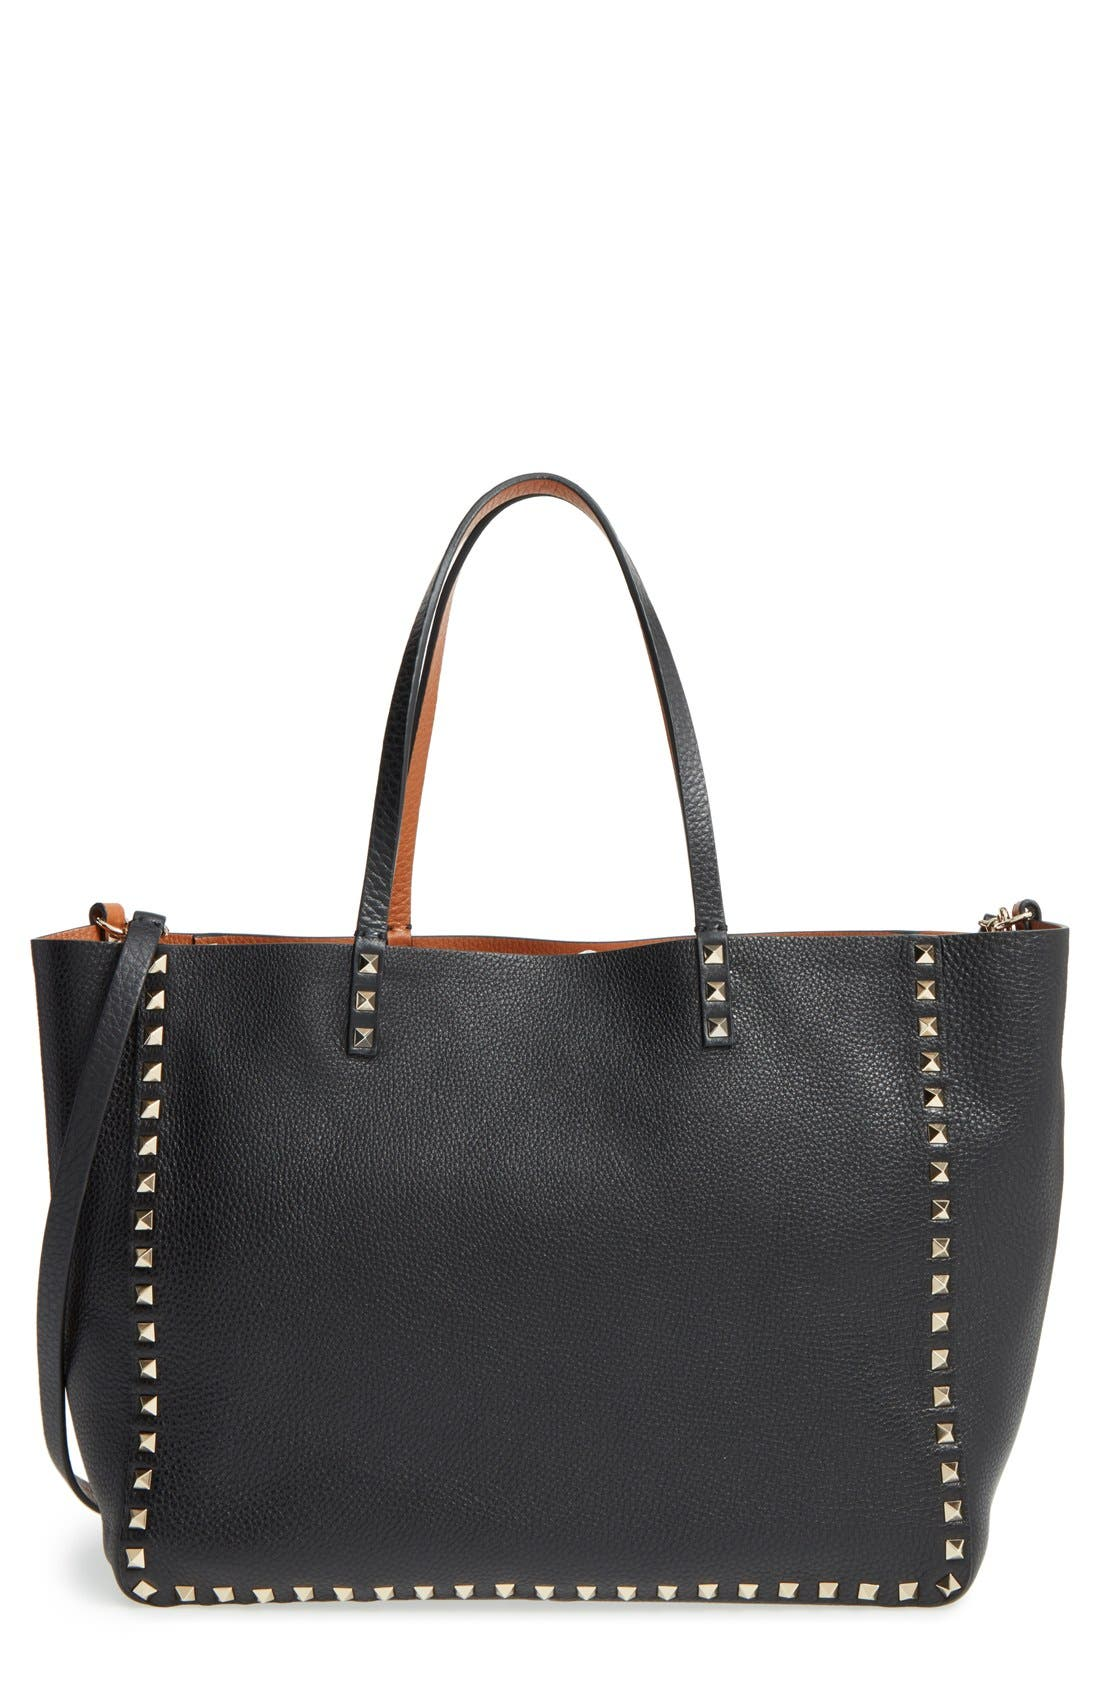 VALENTINO GARAVANI Medium Rockstud - Alce Leather Tote